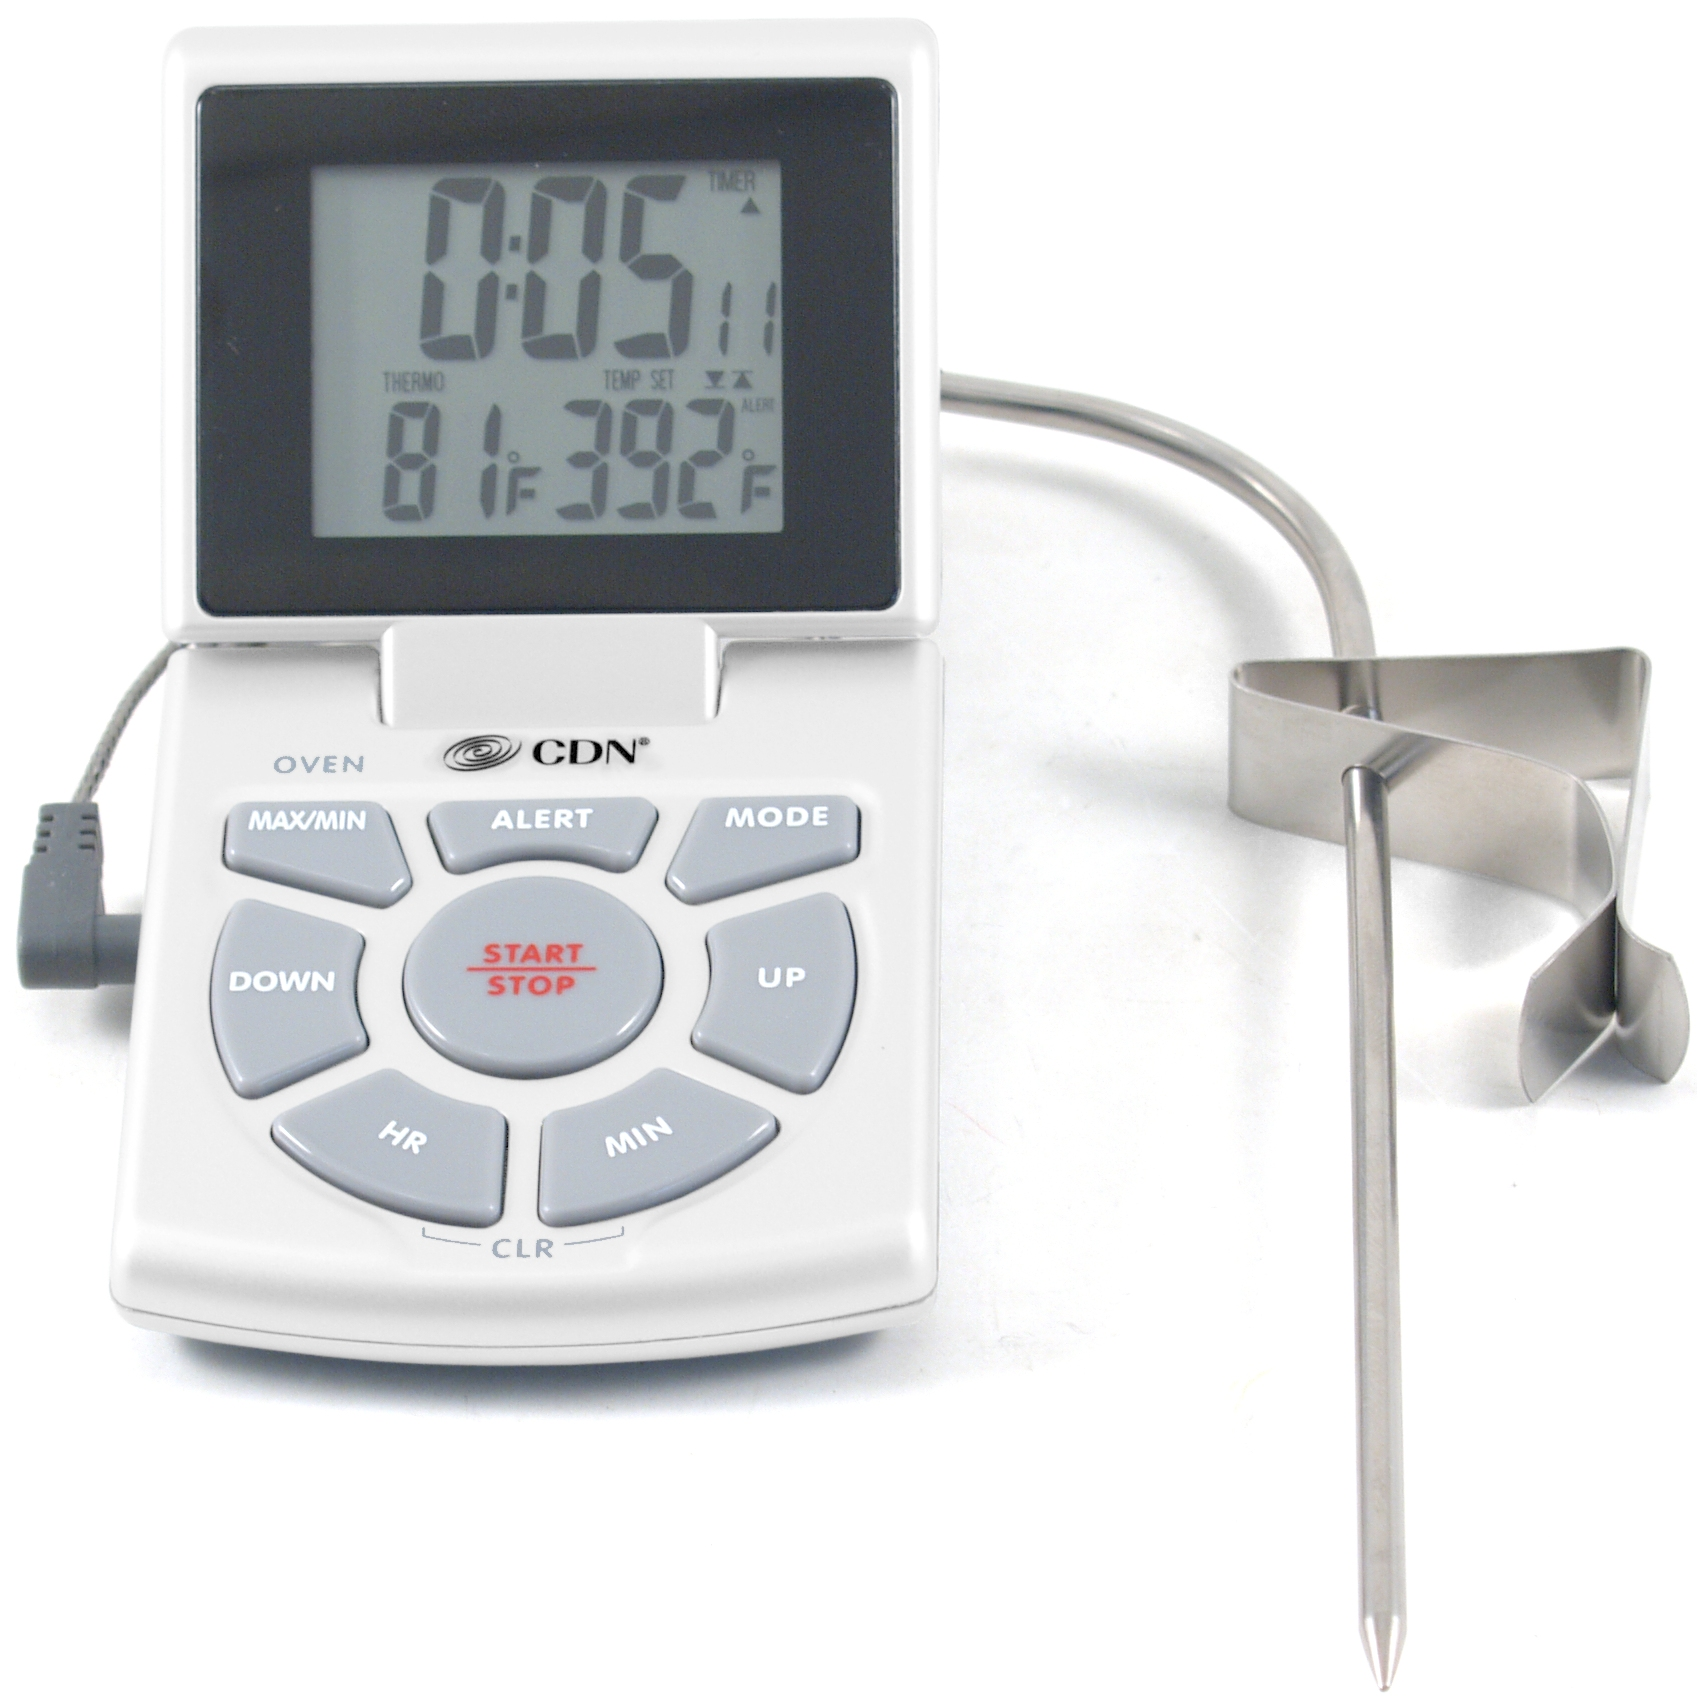 CDN White Combo Probe Digital Thermometer and Timer, with Spanish